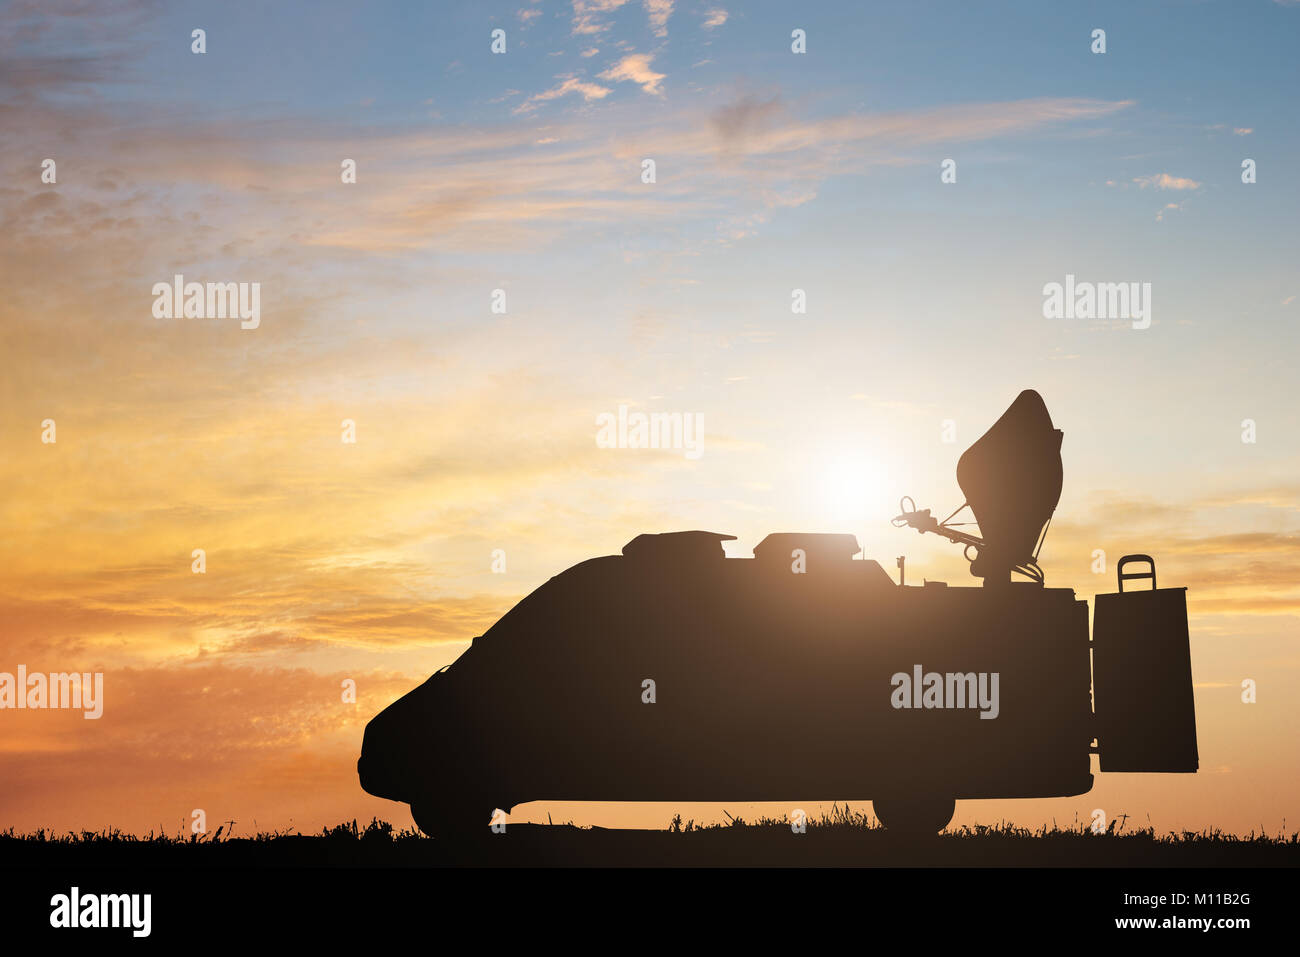 e67c49d4ae Silhouette Of TV News Truck Against Dramatic Sky At Sunset - Stock Image